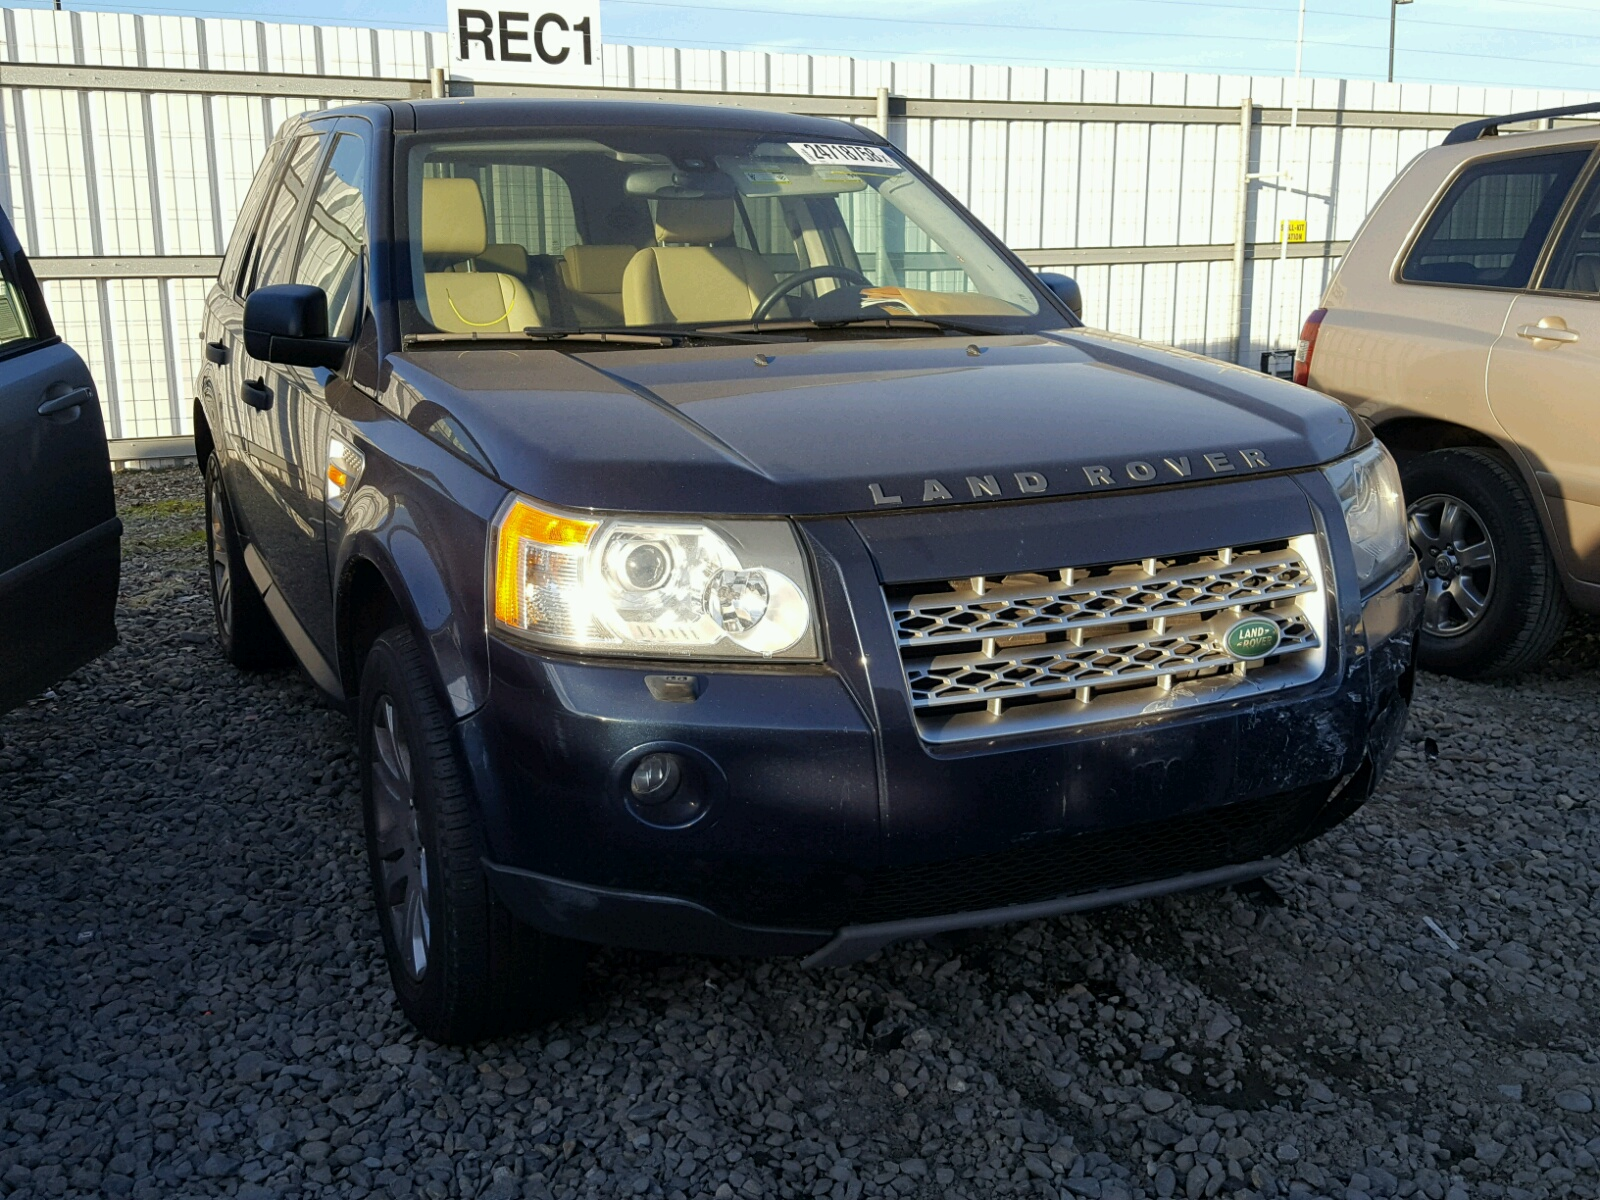 sale auto view for lot carfinder auctions online in ga rover copart certificate se of black on right savannah en landrover tec title land